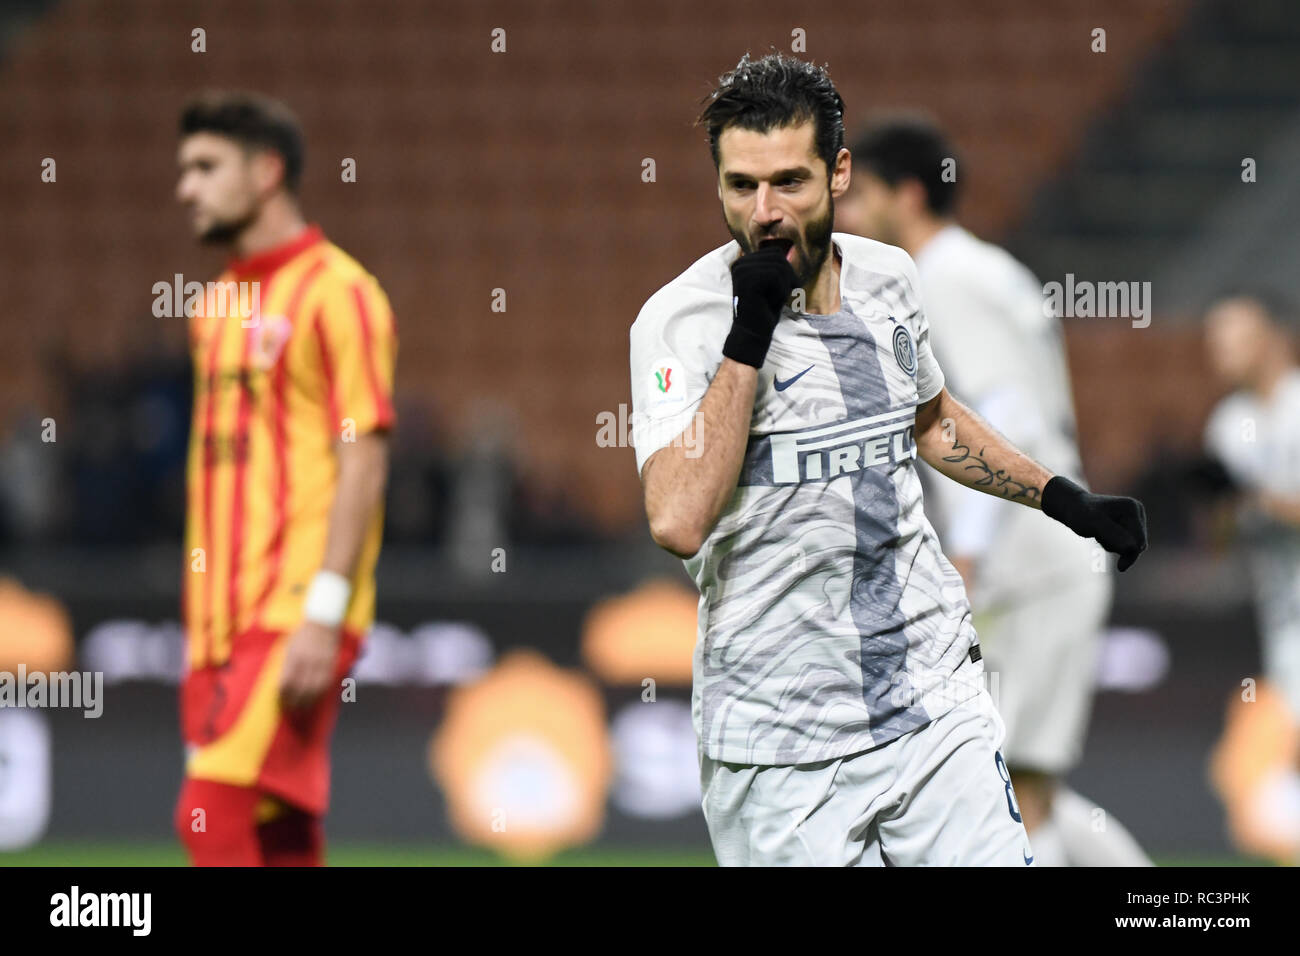 Milan, Italy. 13th Jan 2019. Midfielder Antonio Candreva (Inter) celebrates after scoring during the Italian Cup 'Coppa Italia' football match, Inter Milan vs Benevento Calcio at San Siro Meazza Stadium in Milan, Italy on 13 January 2019. The football match is played behind closed doors after Napoli's Senegalese player Kalidou Koulibaly was subject to racist chants by FC Internazionale's 'ultra' fans during the Boxing Day match. Credit: Piero Cruciatti/Alamy Live News - Stock Image